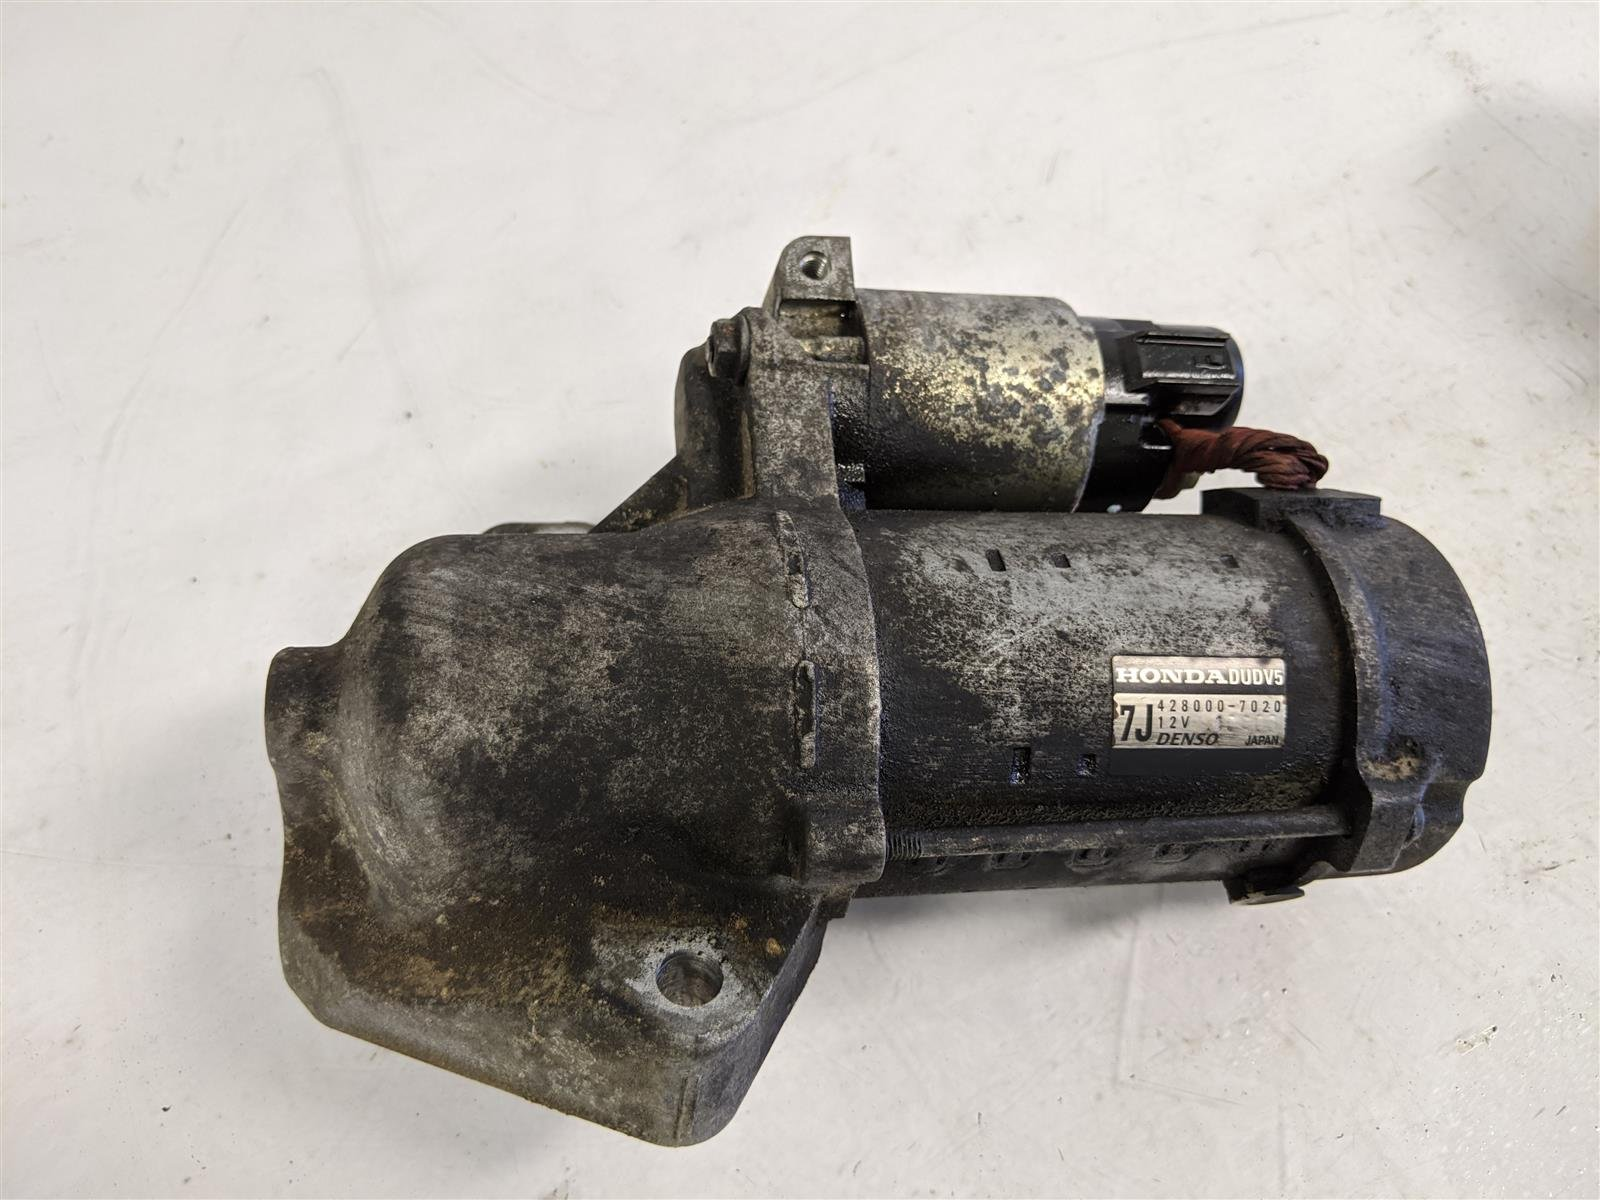 2016 Honda Pilot 6 Speed Starter Motor Replacement